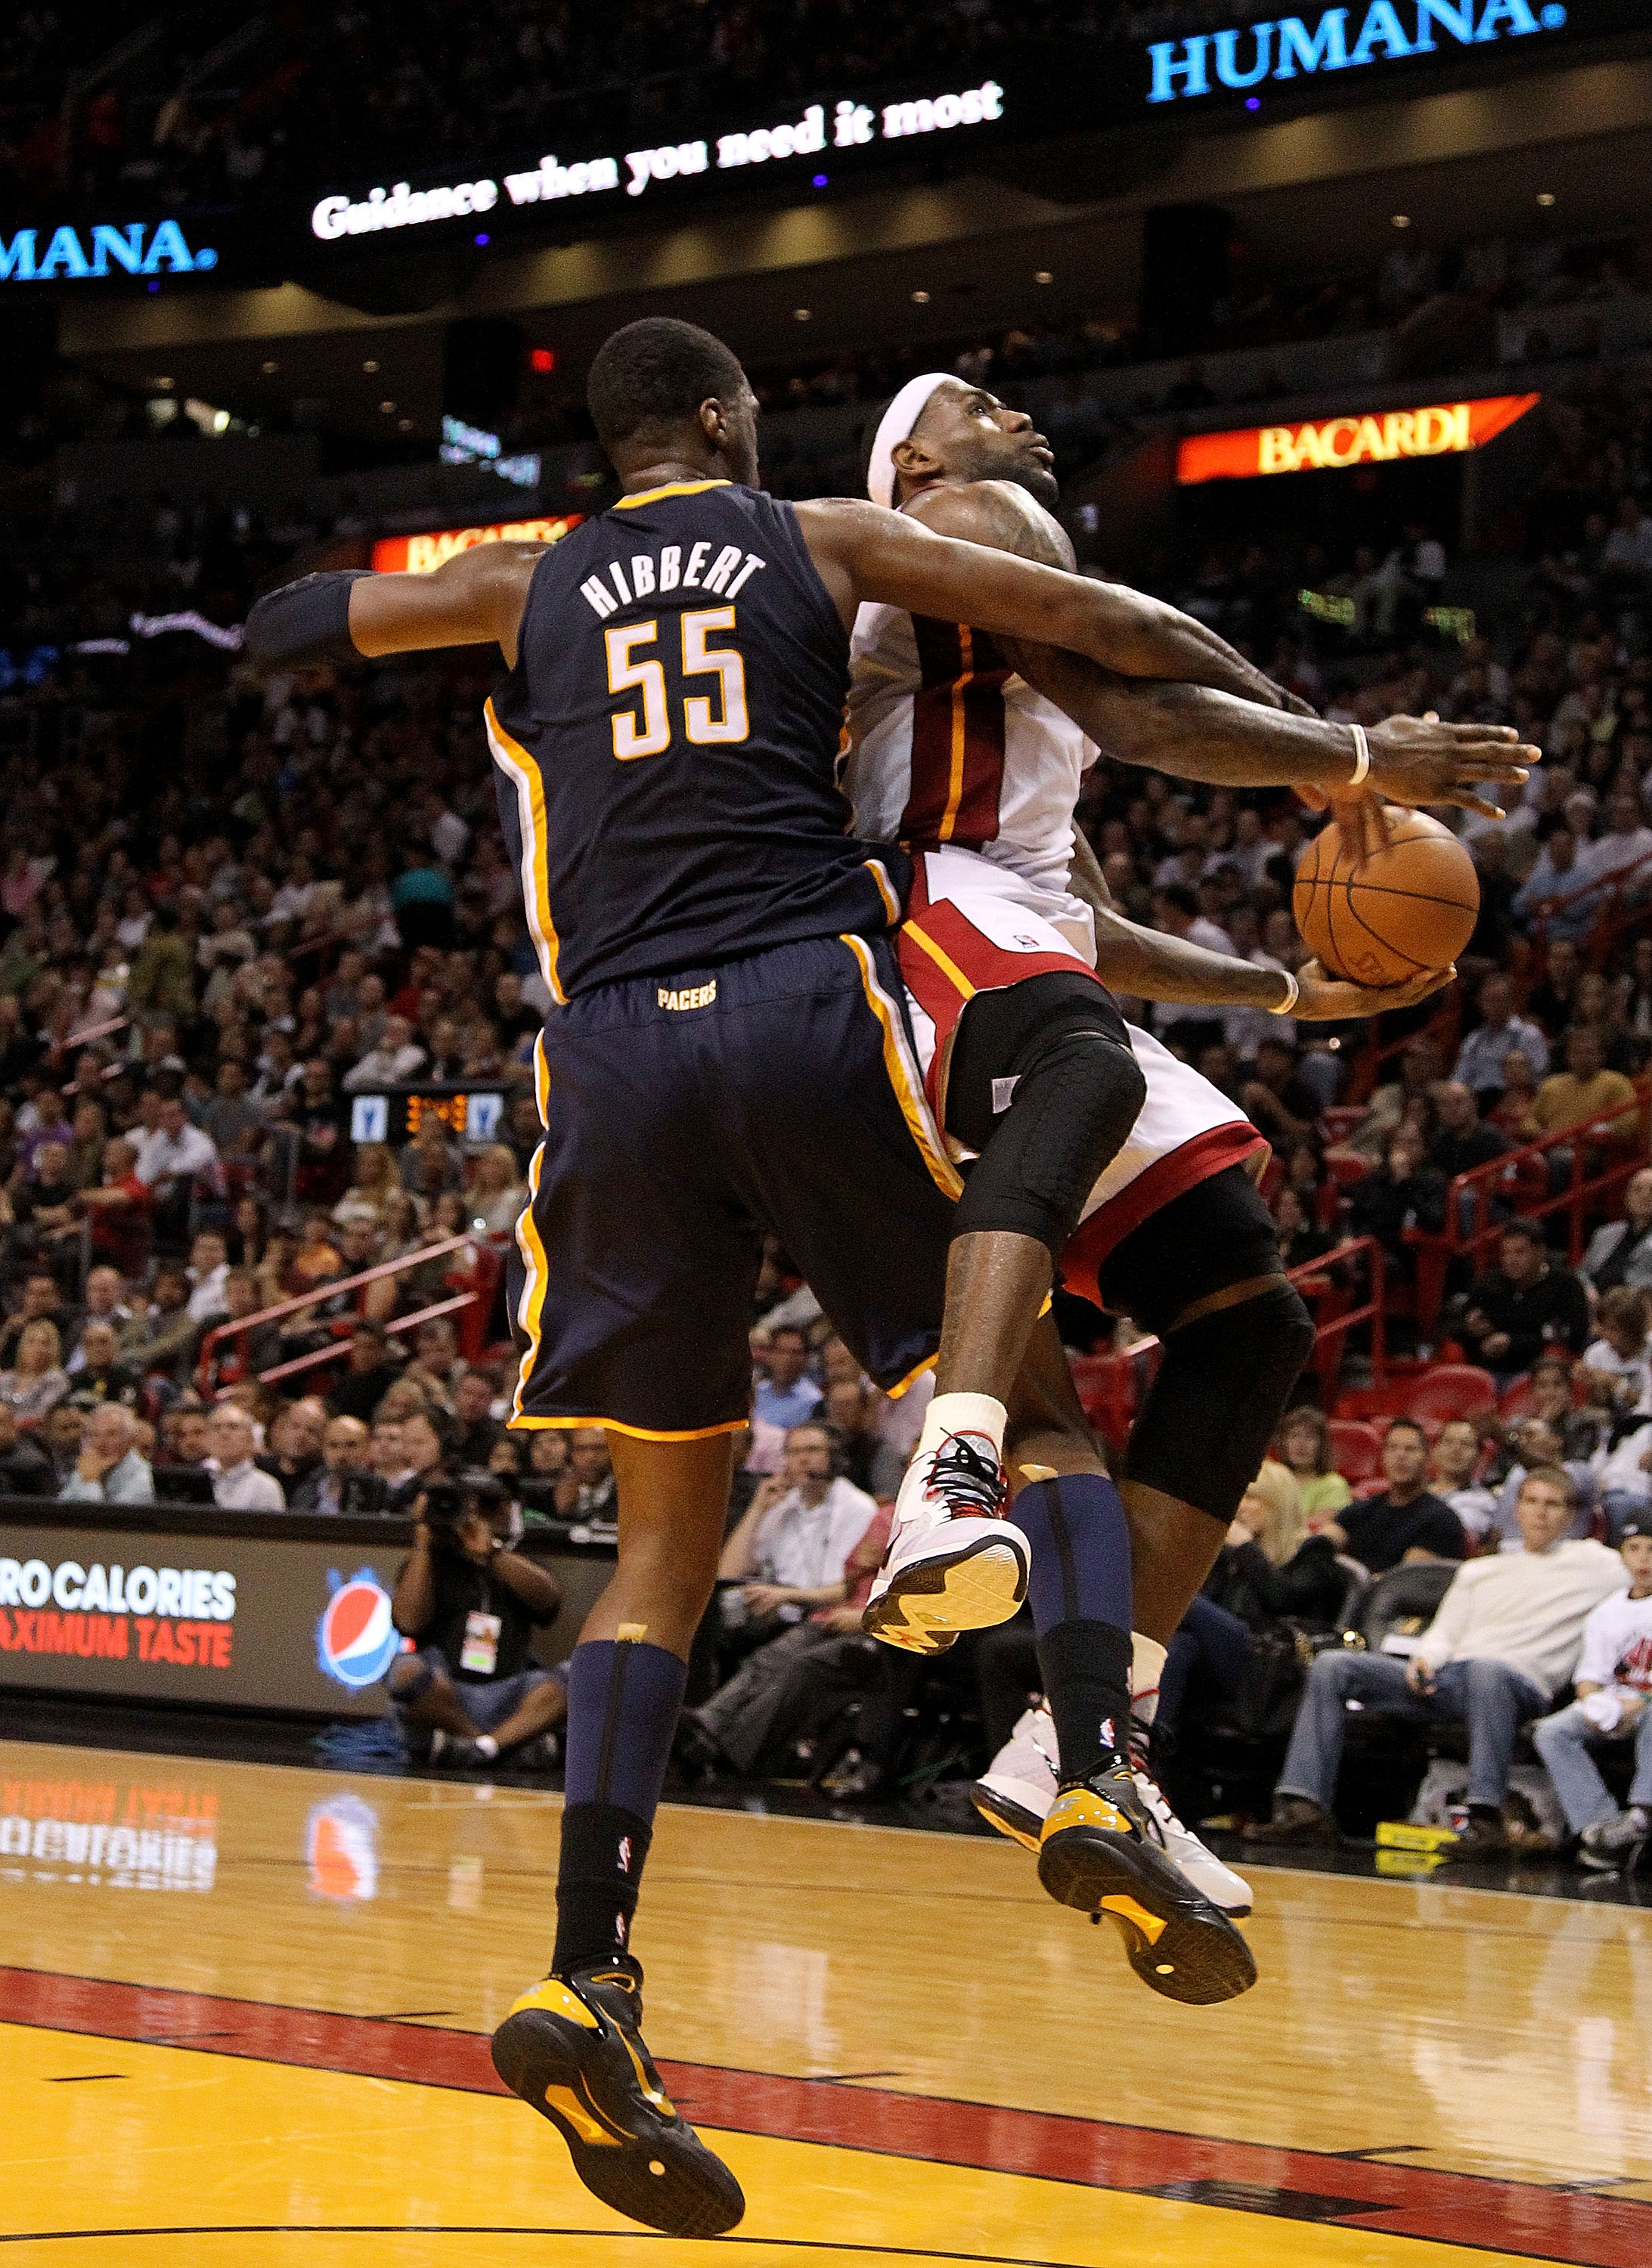 MIAMI, FL - FEBRUARY 08:  LeBron James #6 of the Miami Heat is fouled by Roy Hibbert #55 of the Indiana Pacers during a game at American Airlines Arena on February 8, 2011 in Miami, Florida. NOTE TO USER: User expressly acknowledges and agrees that, by do